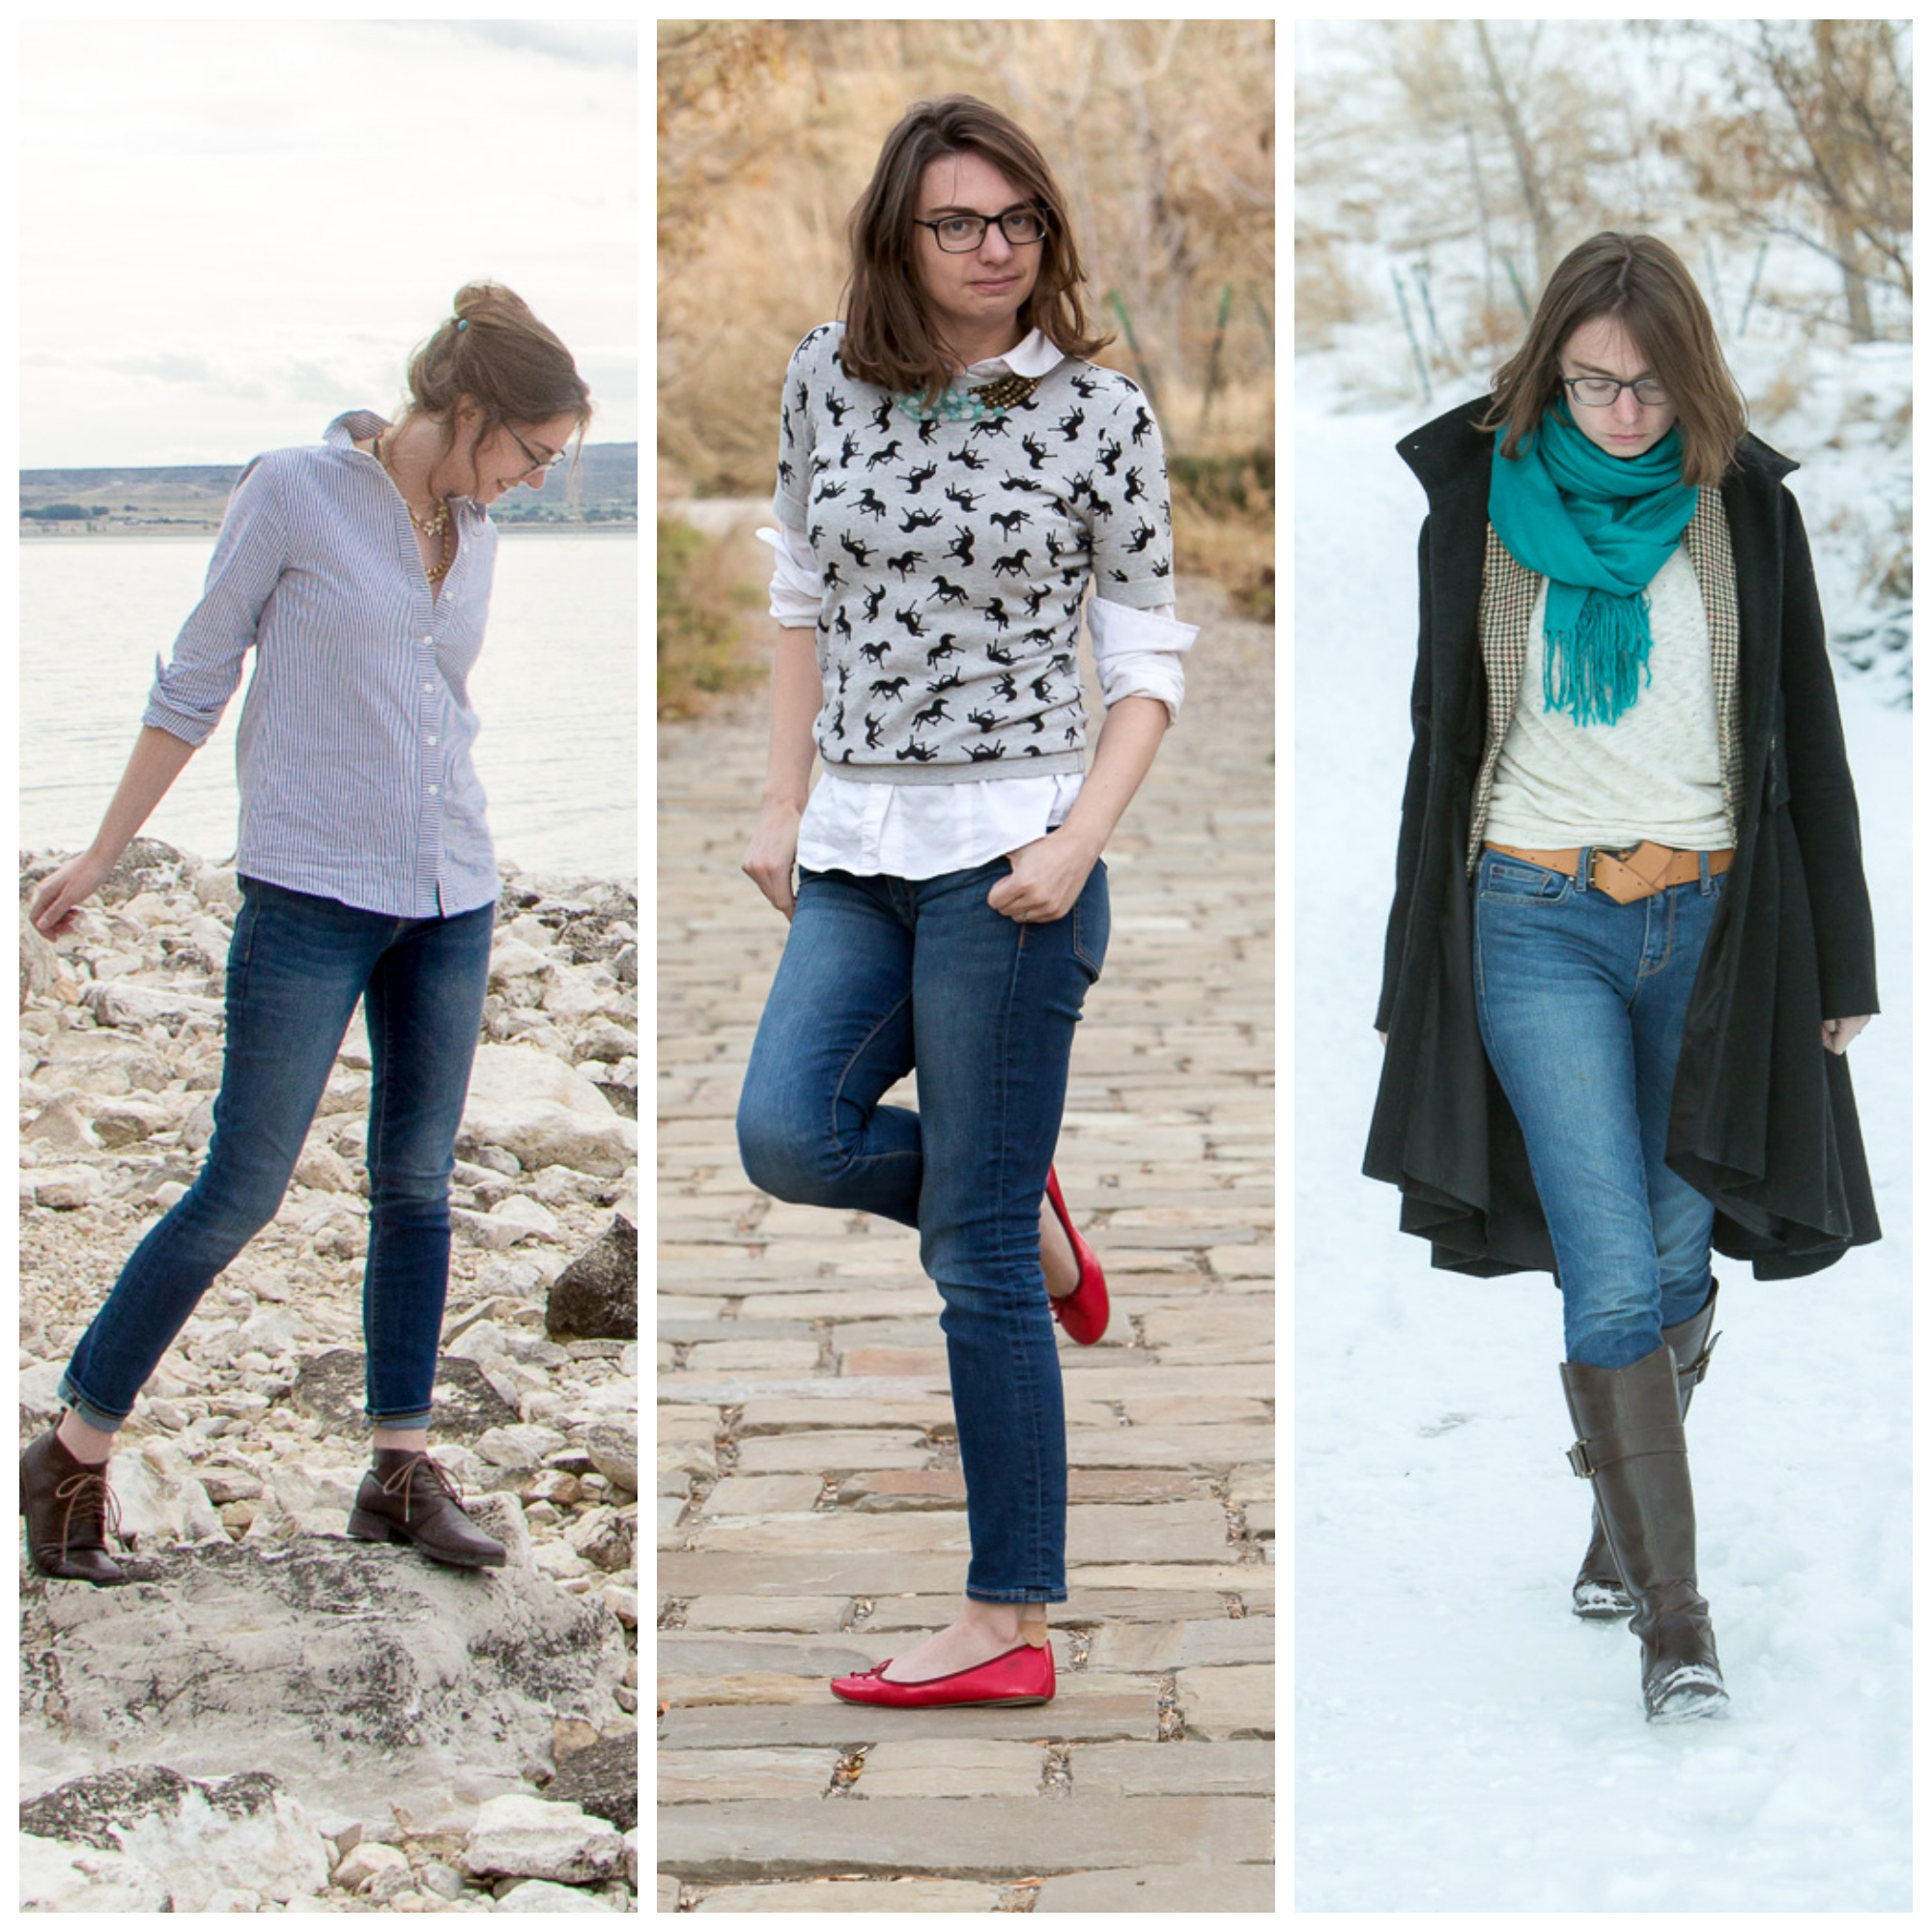 skinny jeans, remix, outfits, never fully dressed, withoutastyle, wyoming,jeans,